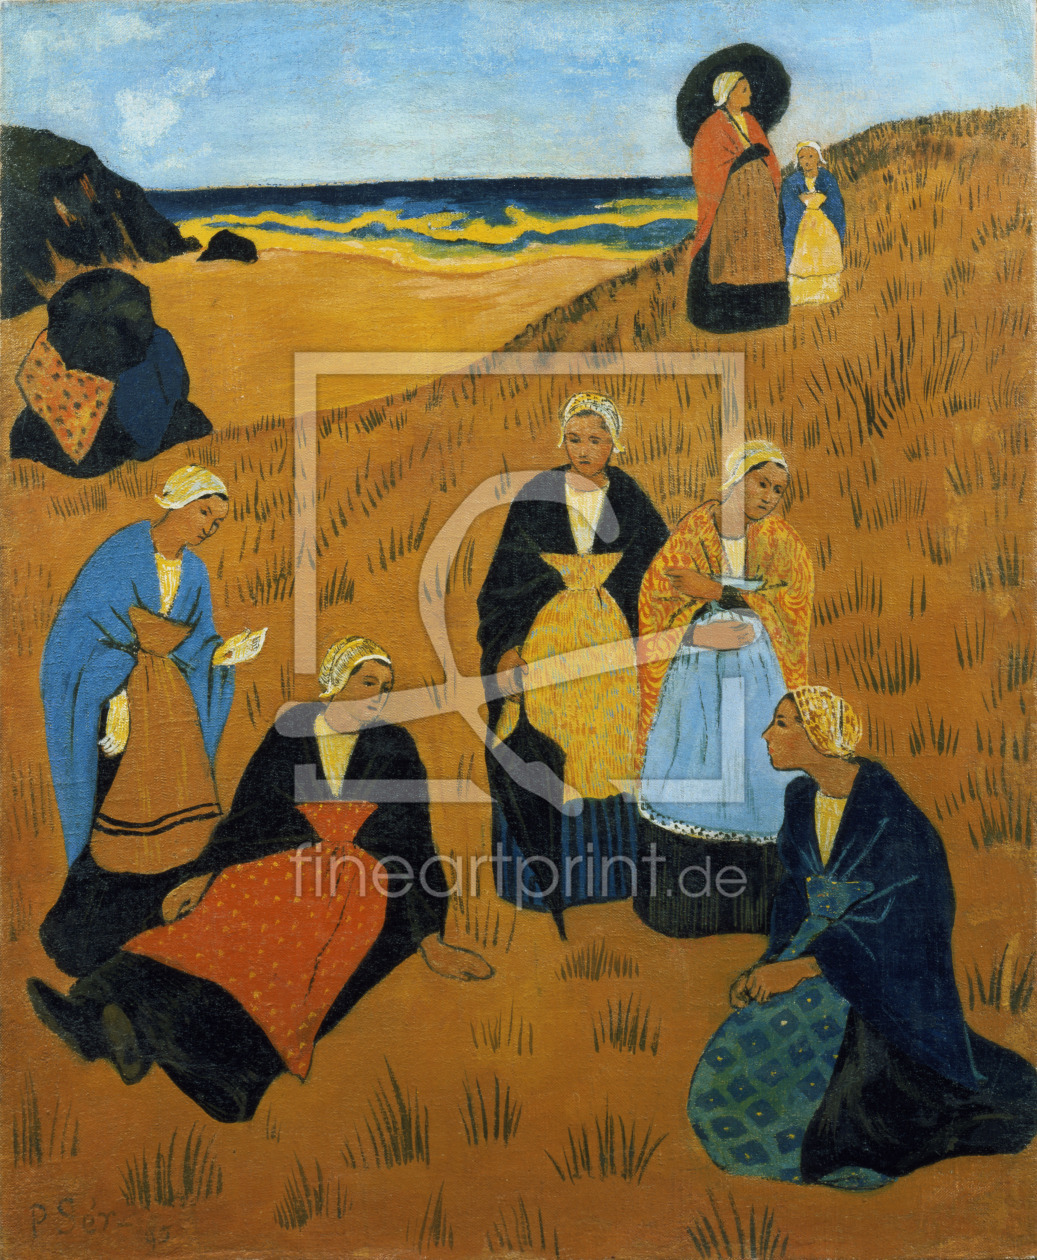 Bild-Nr.: 31002776 Young Breton Women wearing Shawls, or The Girls of Douarnenez, 1895 erstellt von Serusier, Paul